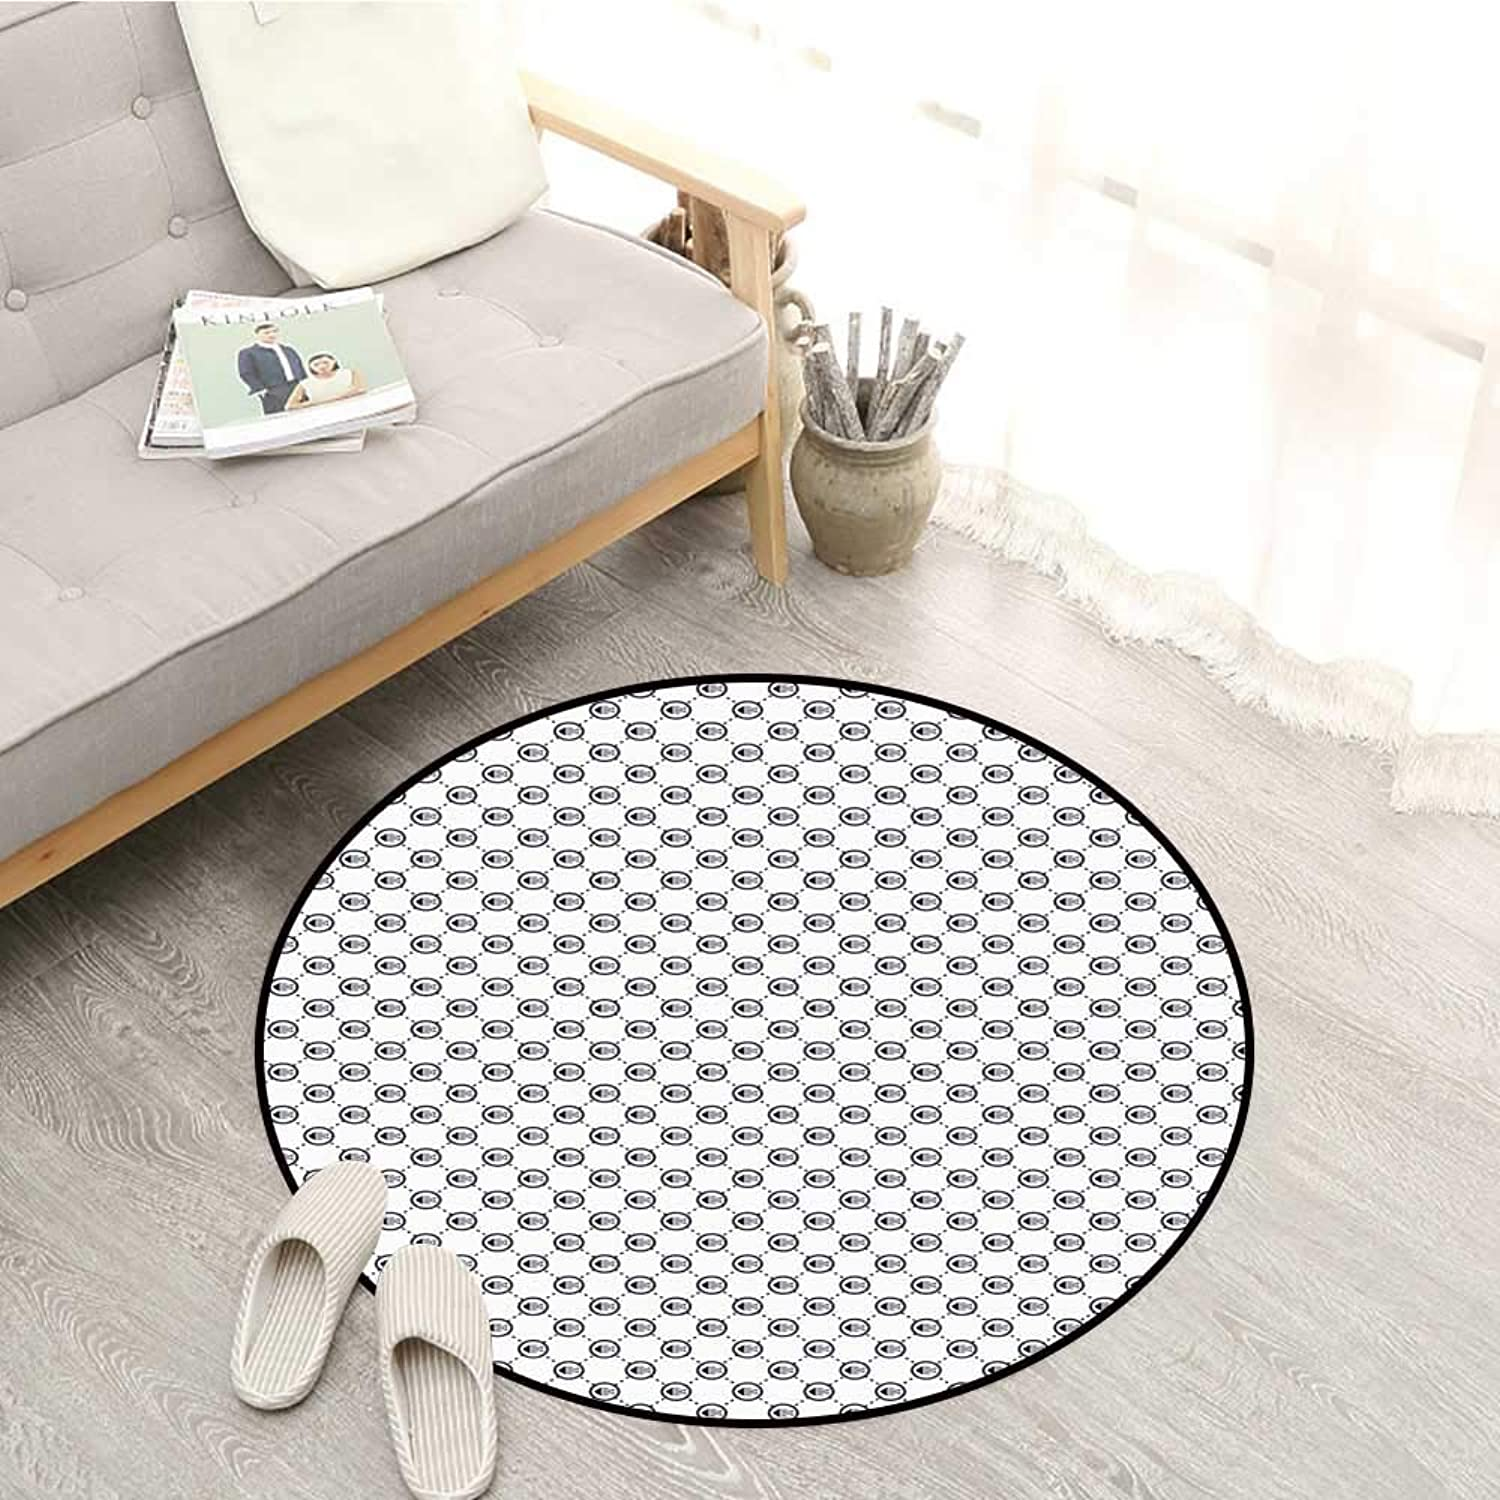 Fishes Kids Rugs Monochrome Marine Animals Silhouettes in Circles with Diamond Shapes Backdrop Sofa Coffee Table Mat 4'7  Navy bluee White